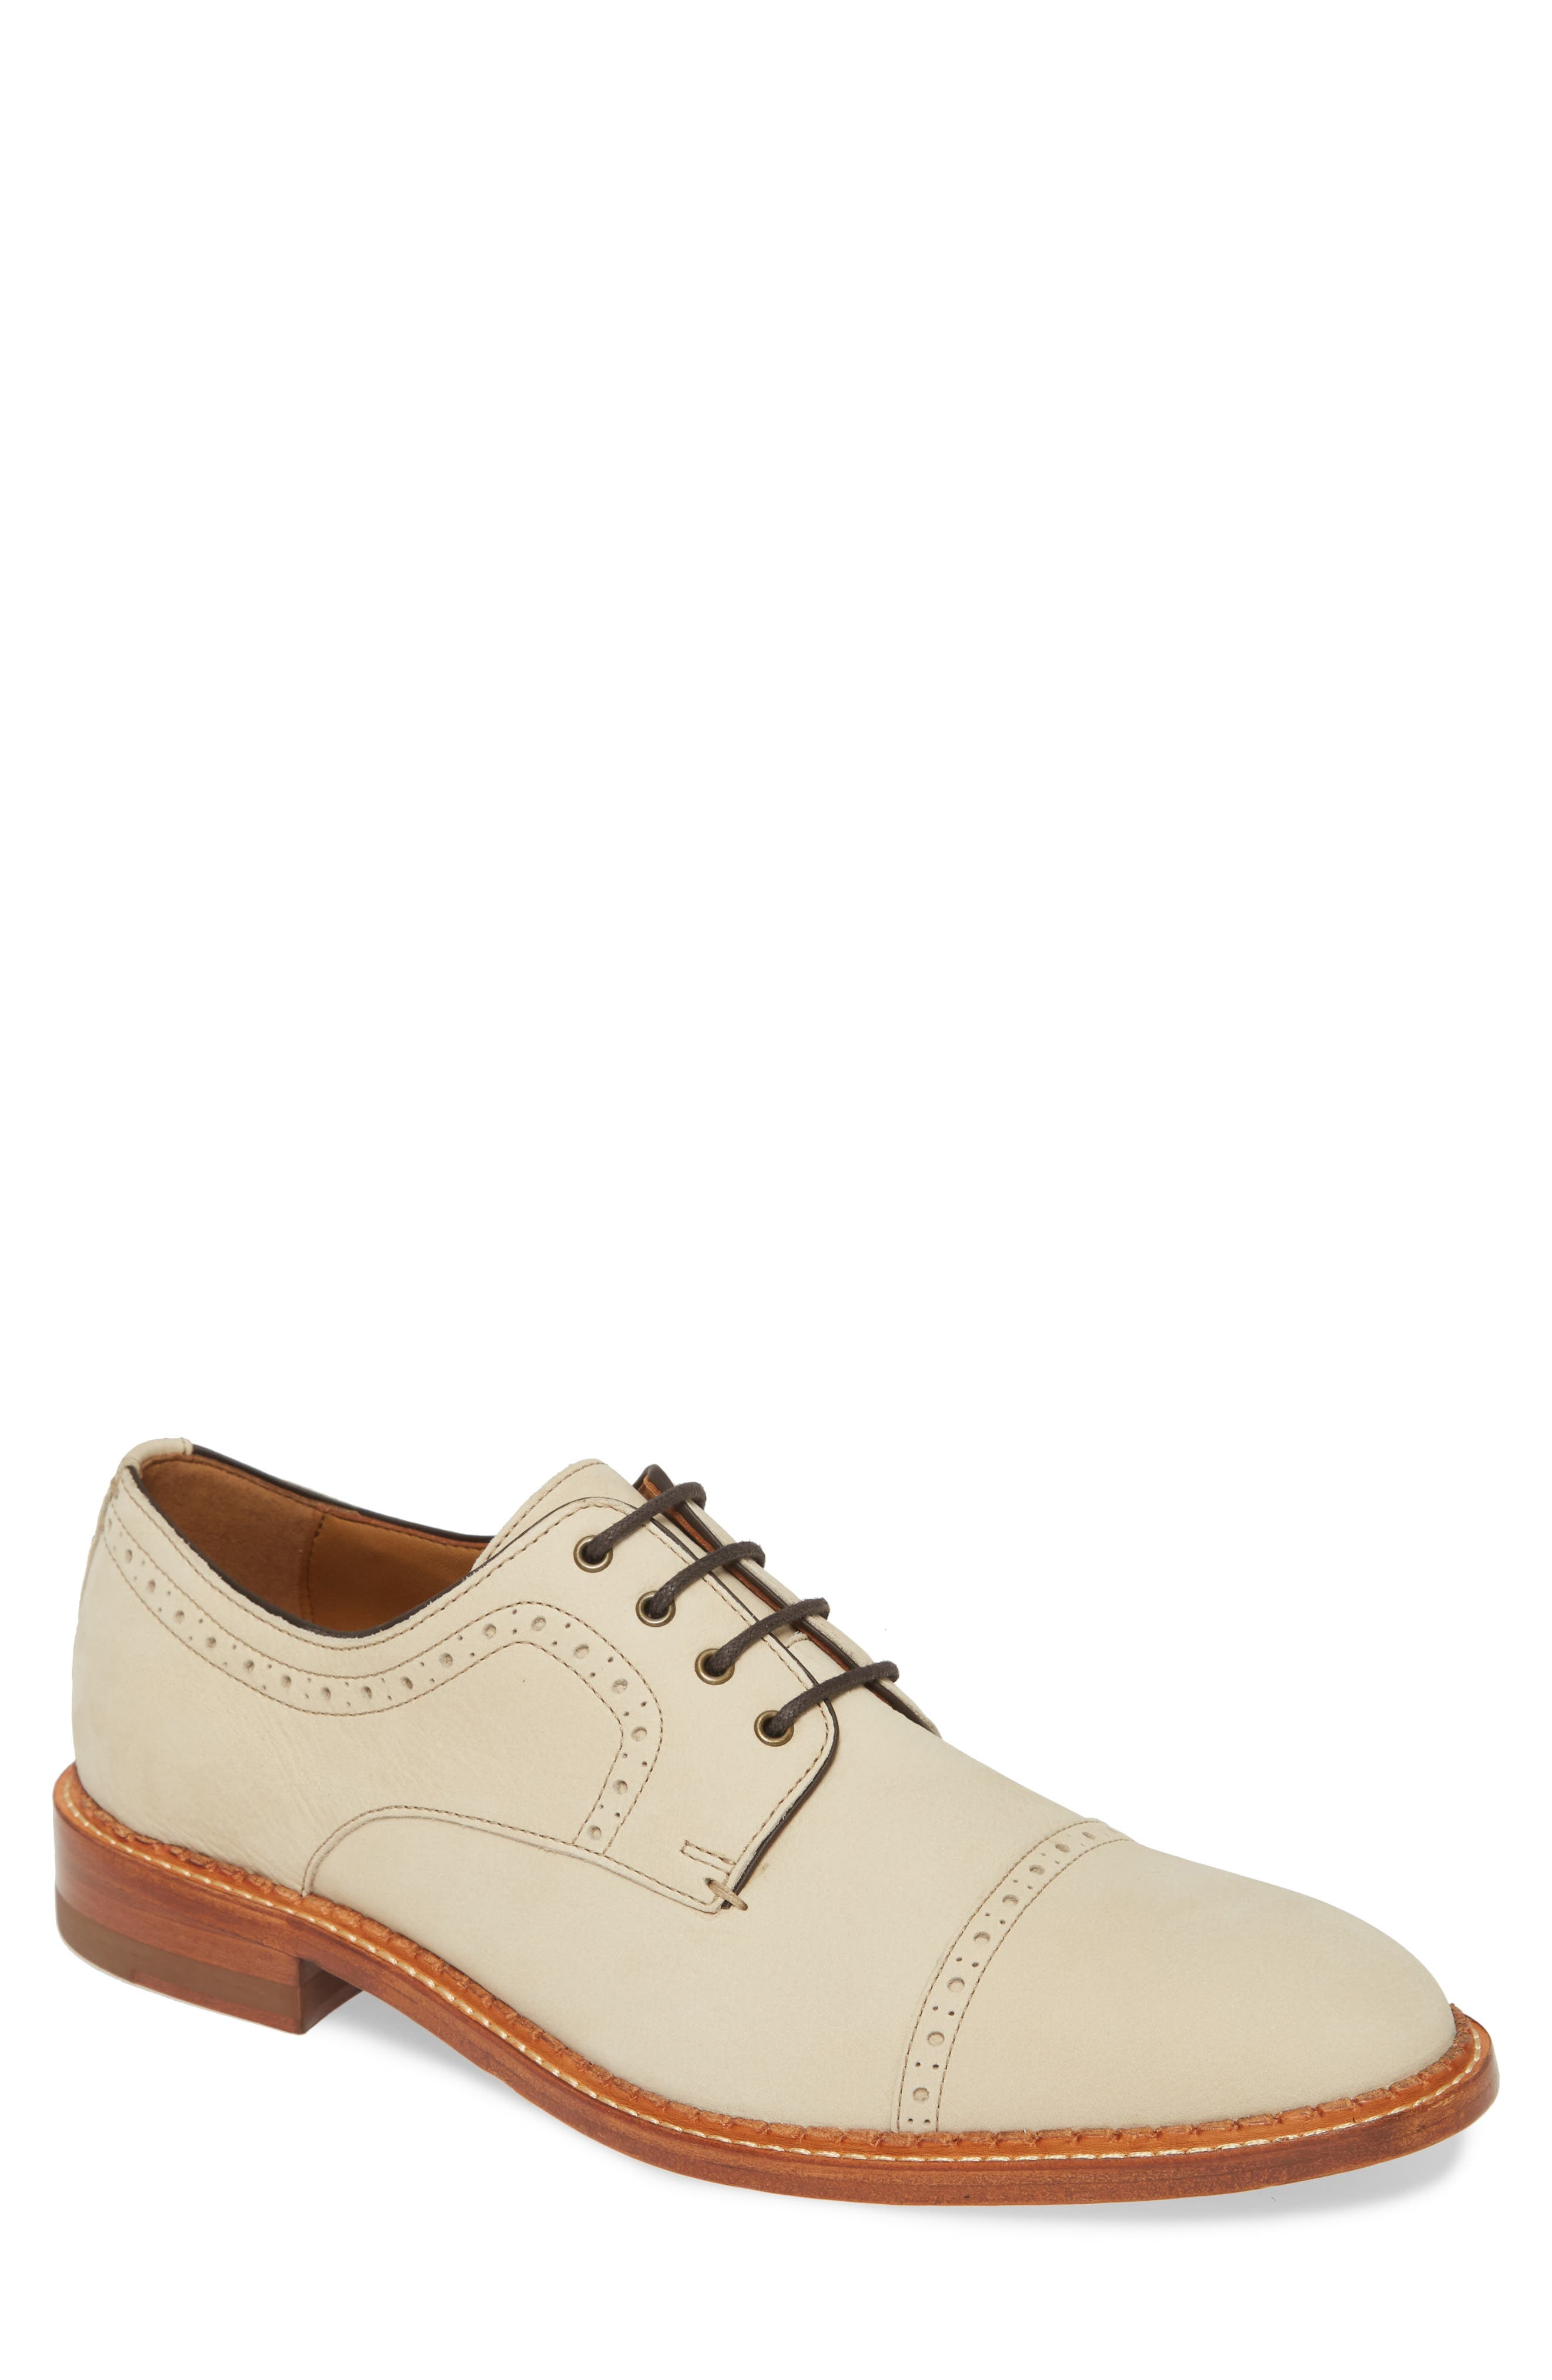 1920s Style Mens Shoes | Peaky Blinders Boots Mens J  m 1850 Chambliss Cap Toe Derby Size 11.5 M - White $198.00 AT vintagedancer.com